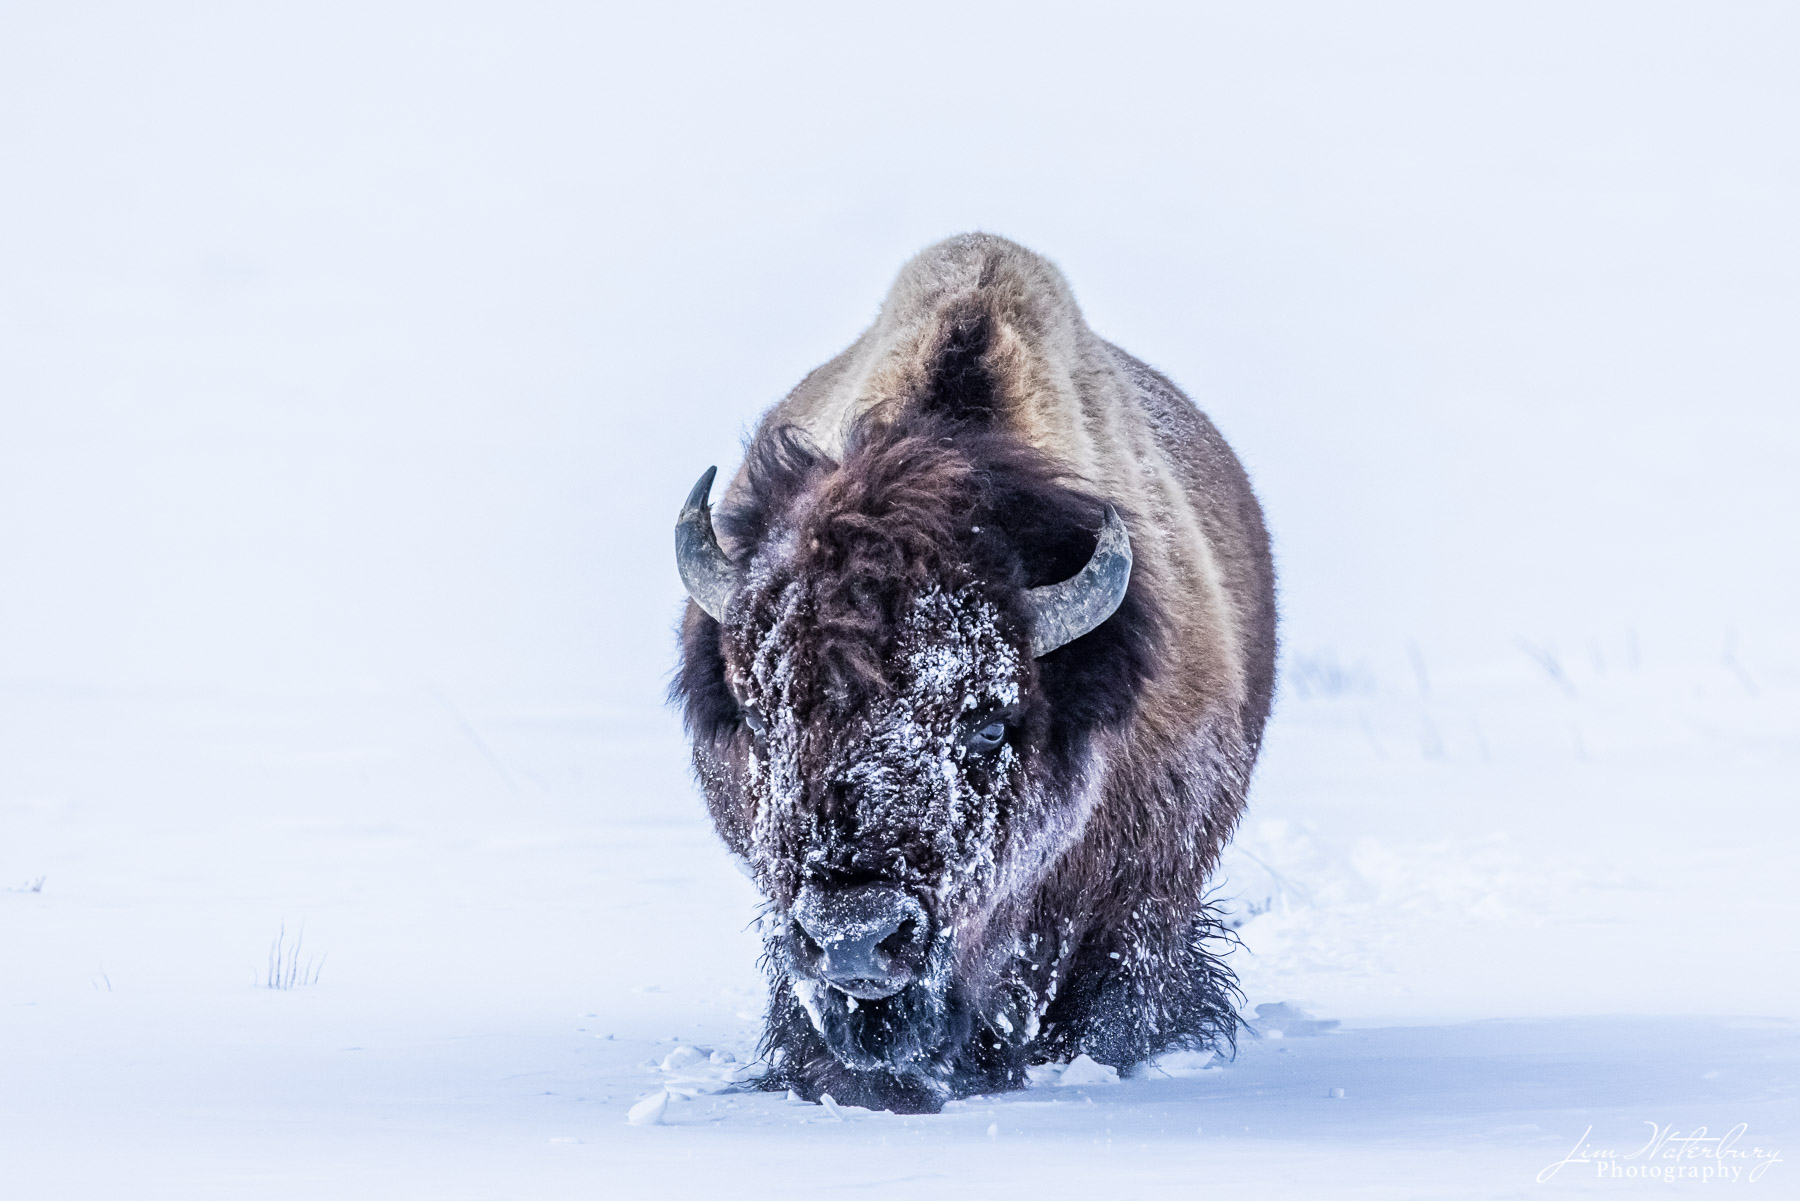 A single bison approach head-on through the deep snow.